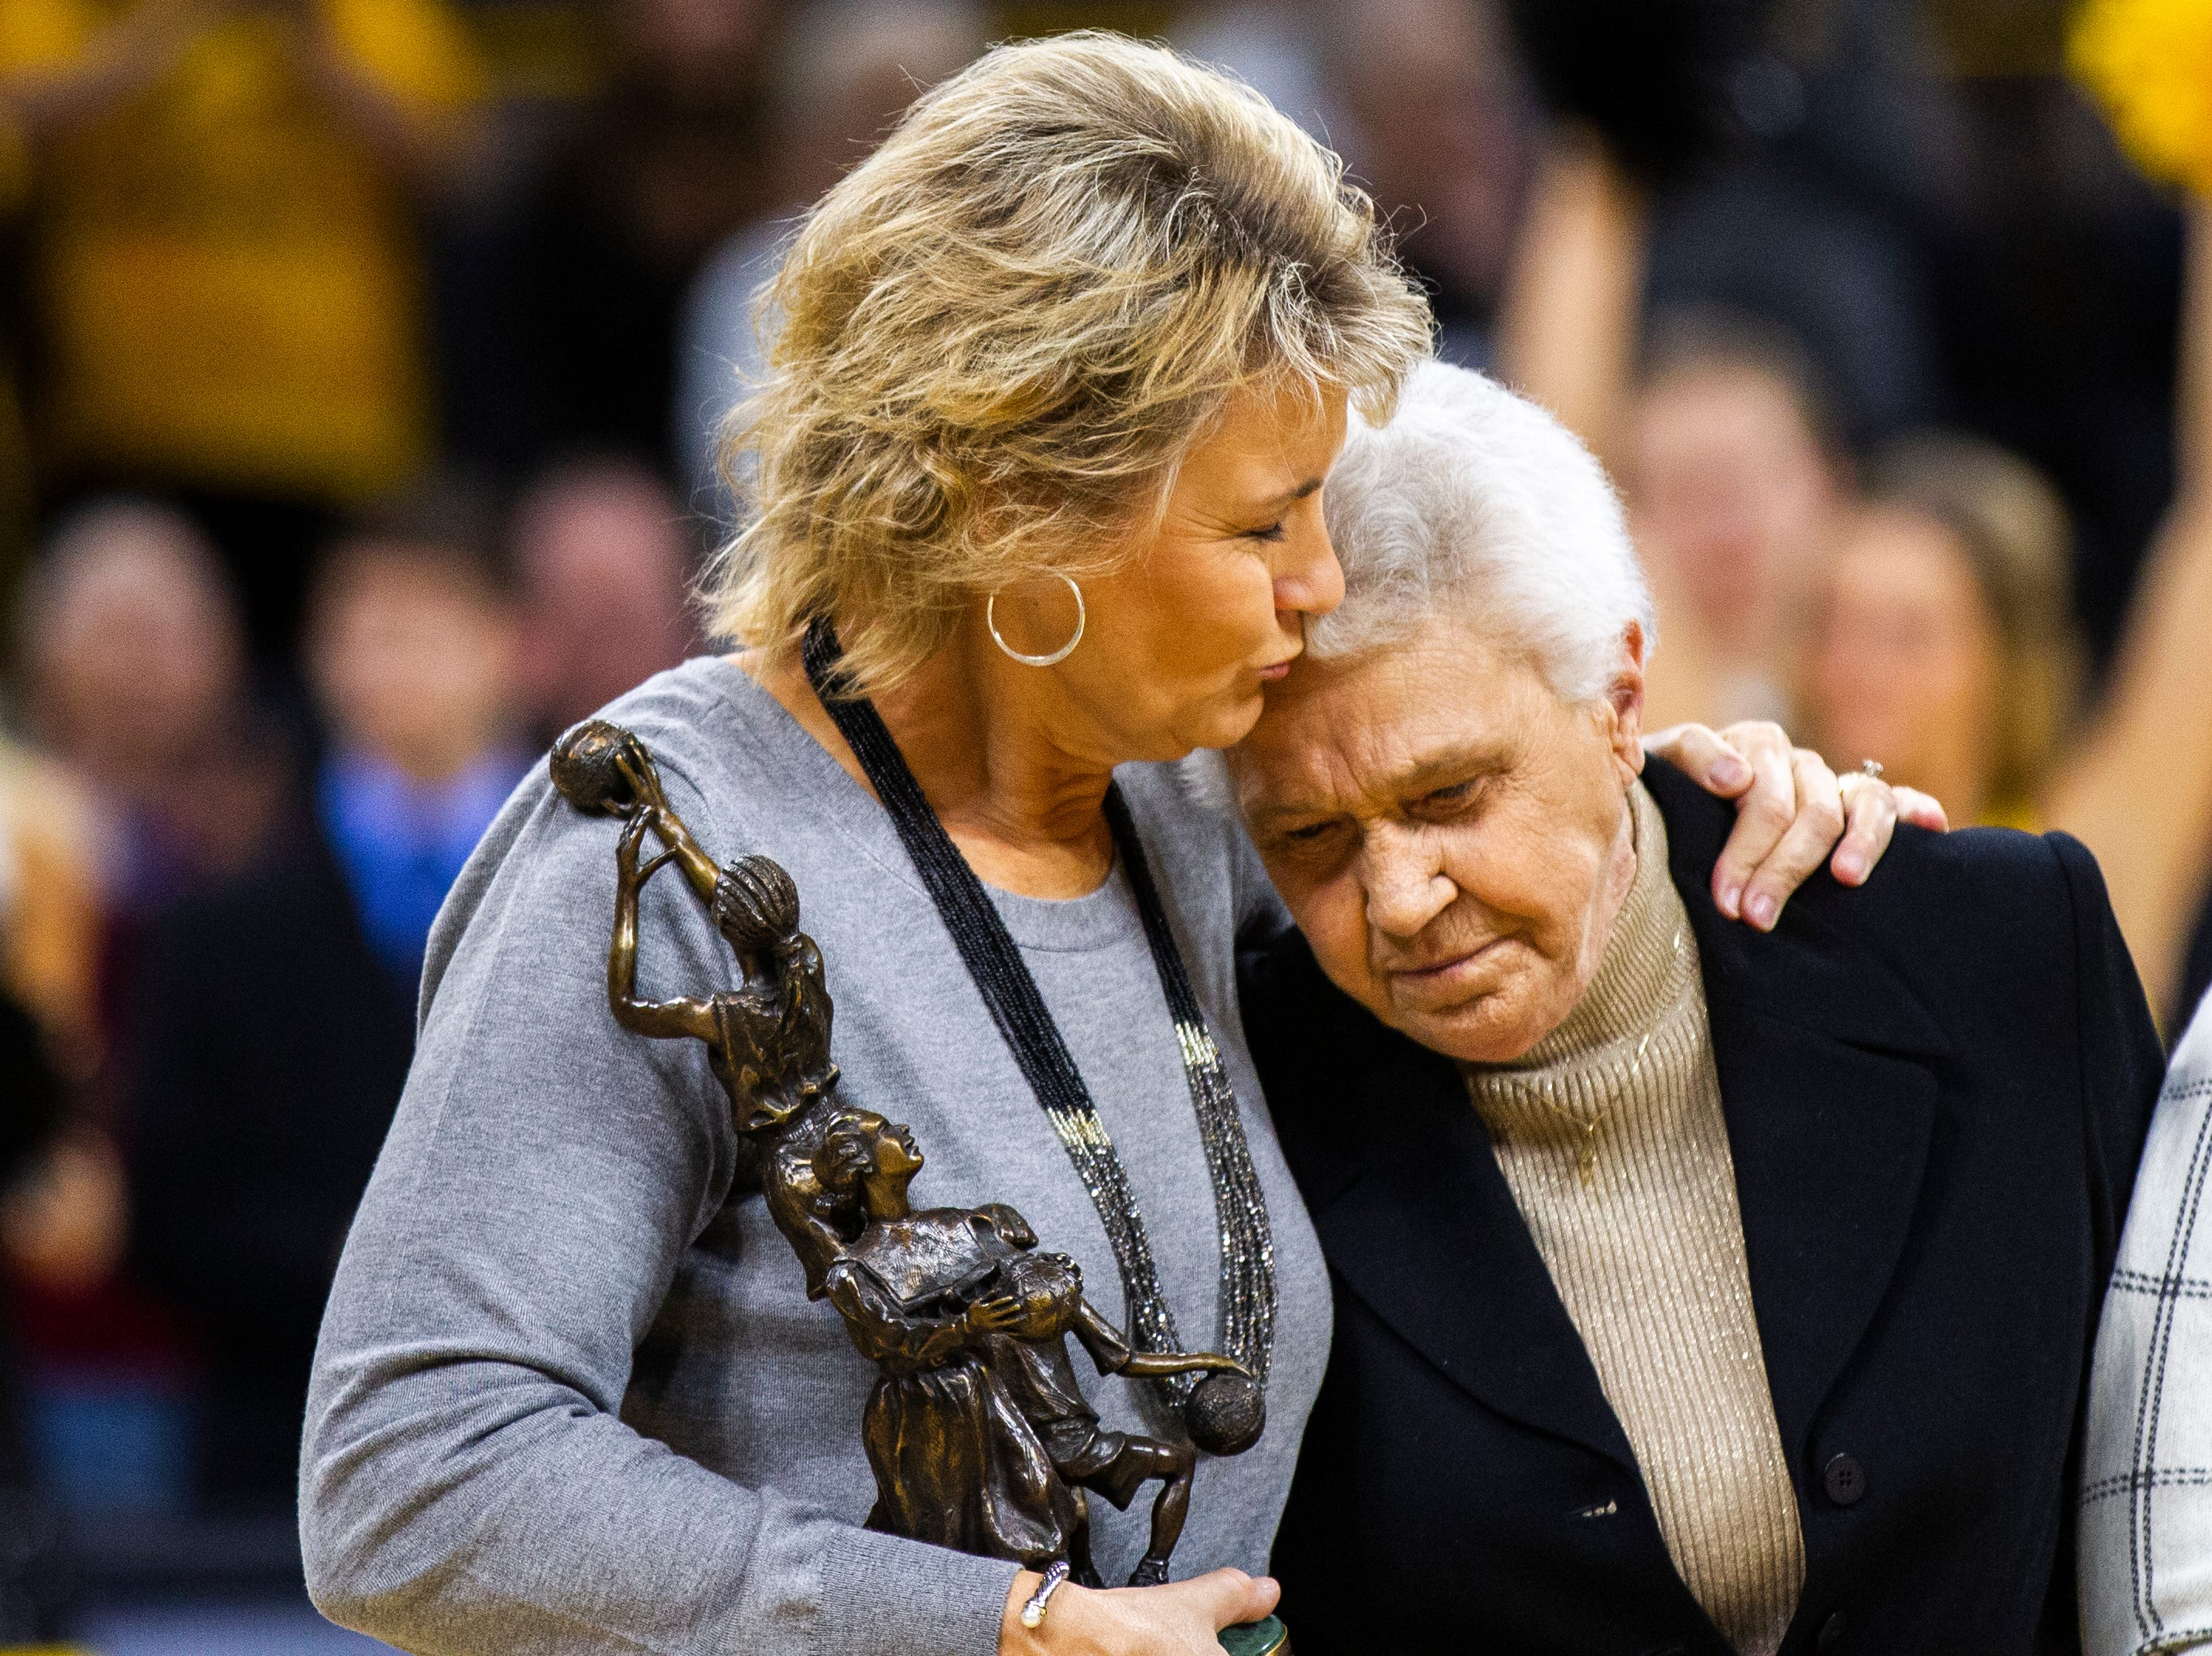 Iowa head coach Lisa Bluder, left, shares a moment with Christine Grant while she is acknowledged for being induced into the women's basketball hall of fame before a NCAA women's basketball game on Sunday, Dec. 2, 2018, at Carver-Hawkeye Arena in Iowa City.